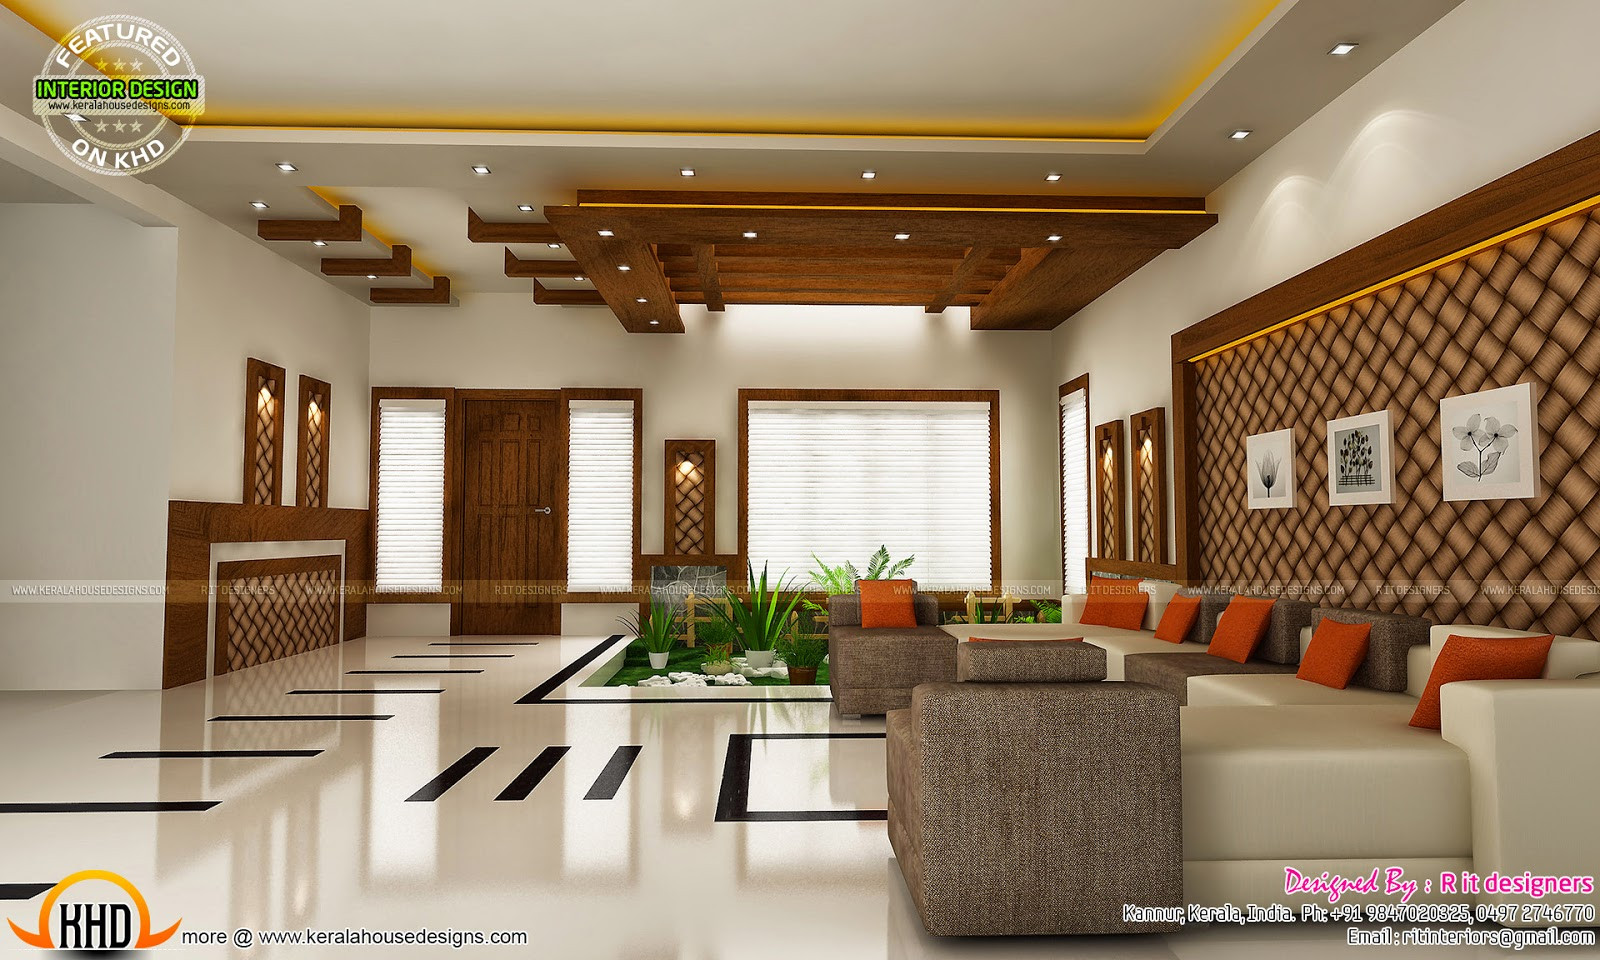 Modern And Unique Dining Kitchen on Kerala Wooden Furniture